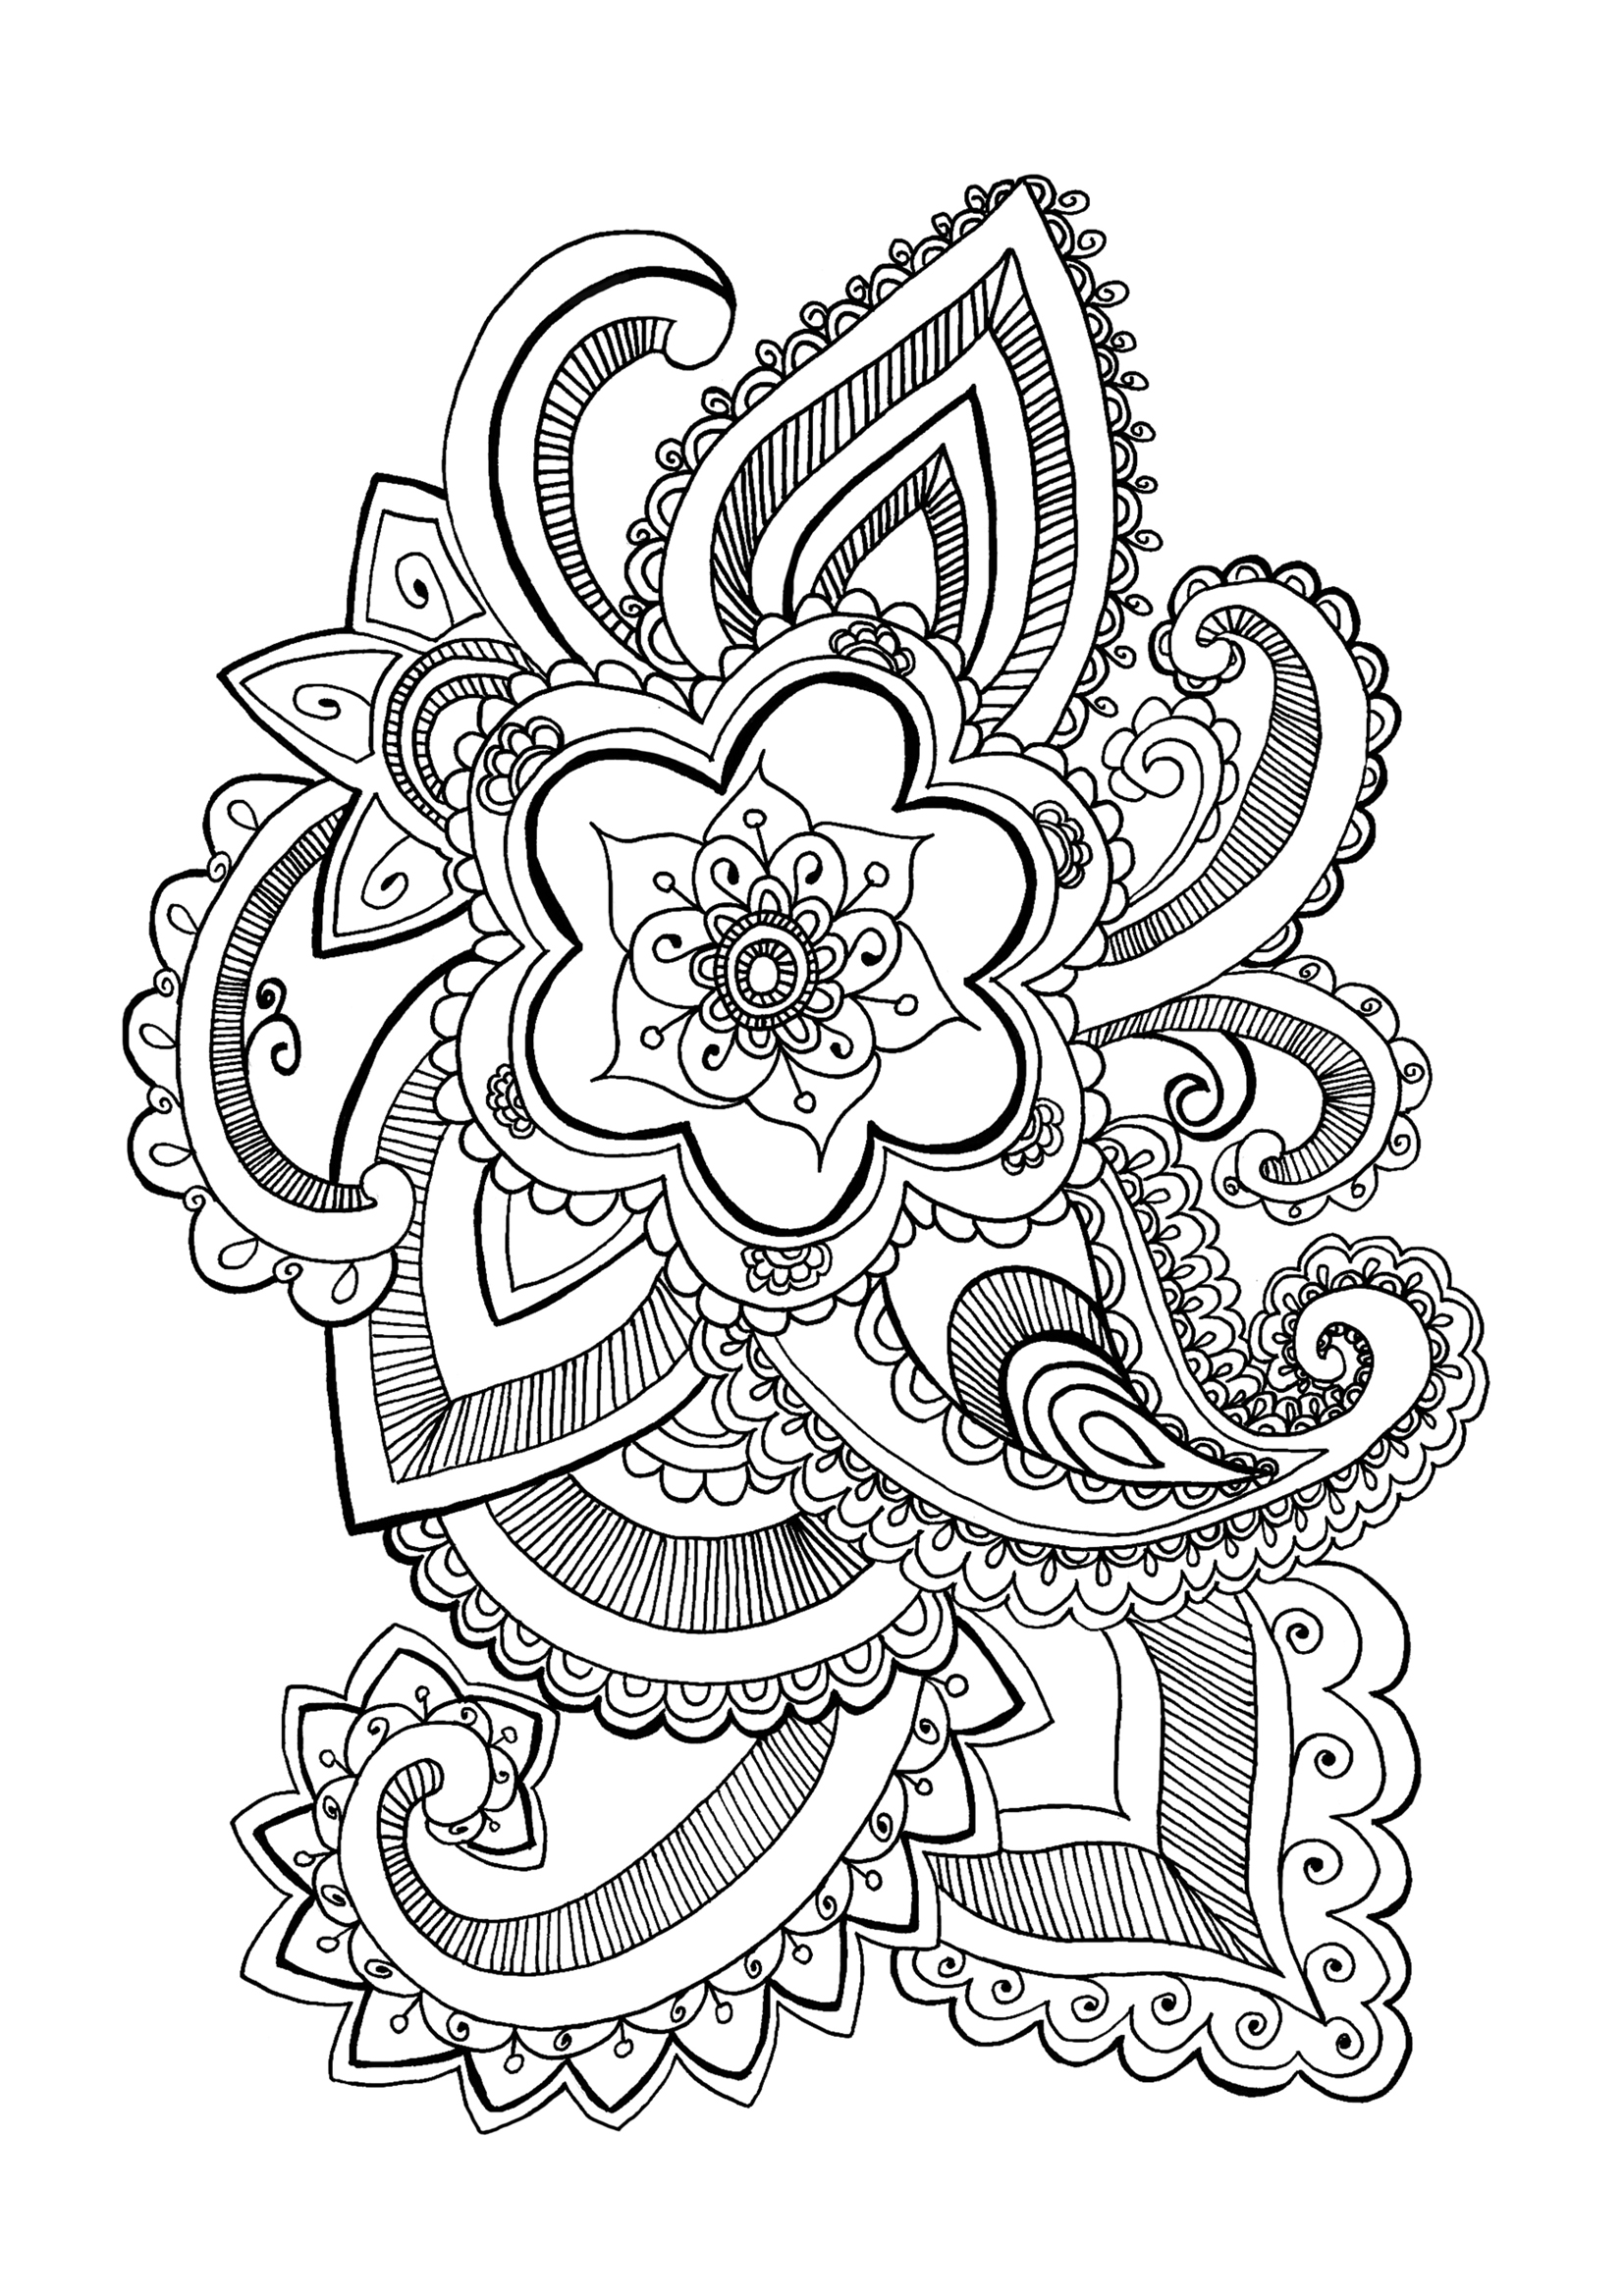 flower coloring pages adults flower coloring pages for adults best coloring pages for pages flower adults coloring